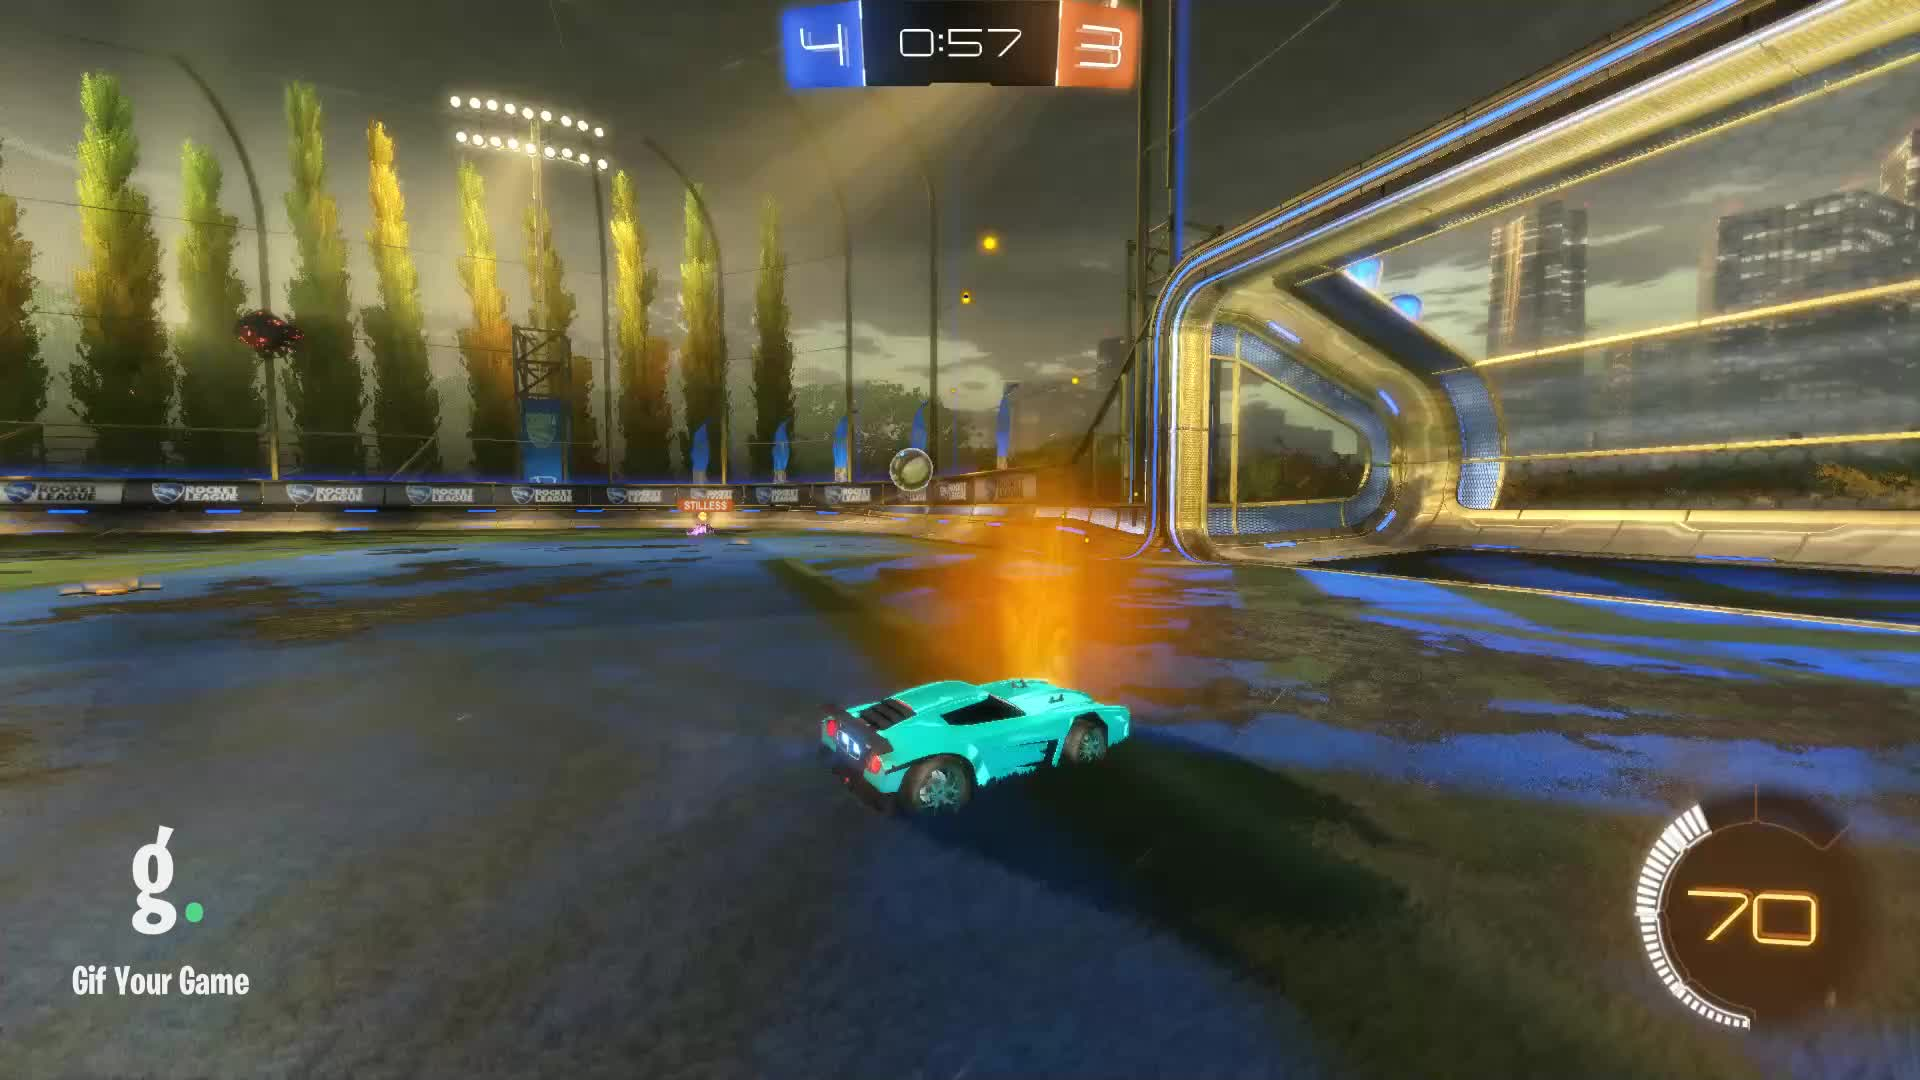 Gif Your Game, GifYourGame, Goal, MrFudgeisgood, Rocket League, RocketLeague, Goal 8: MrFudgeisgood GIFs